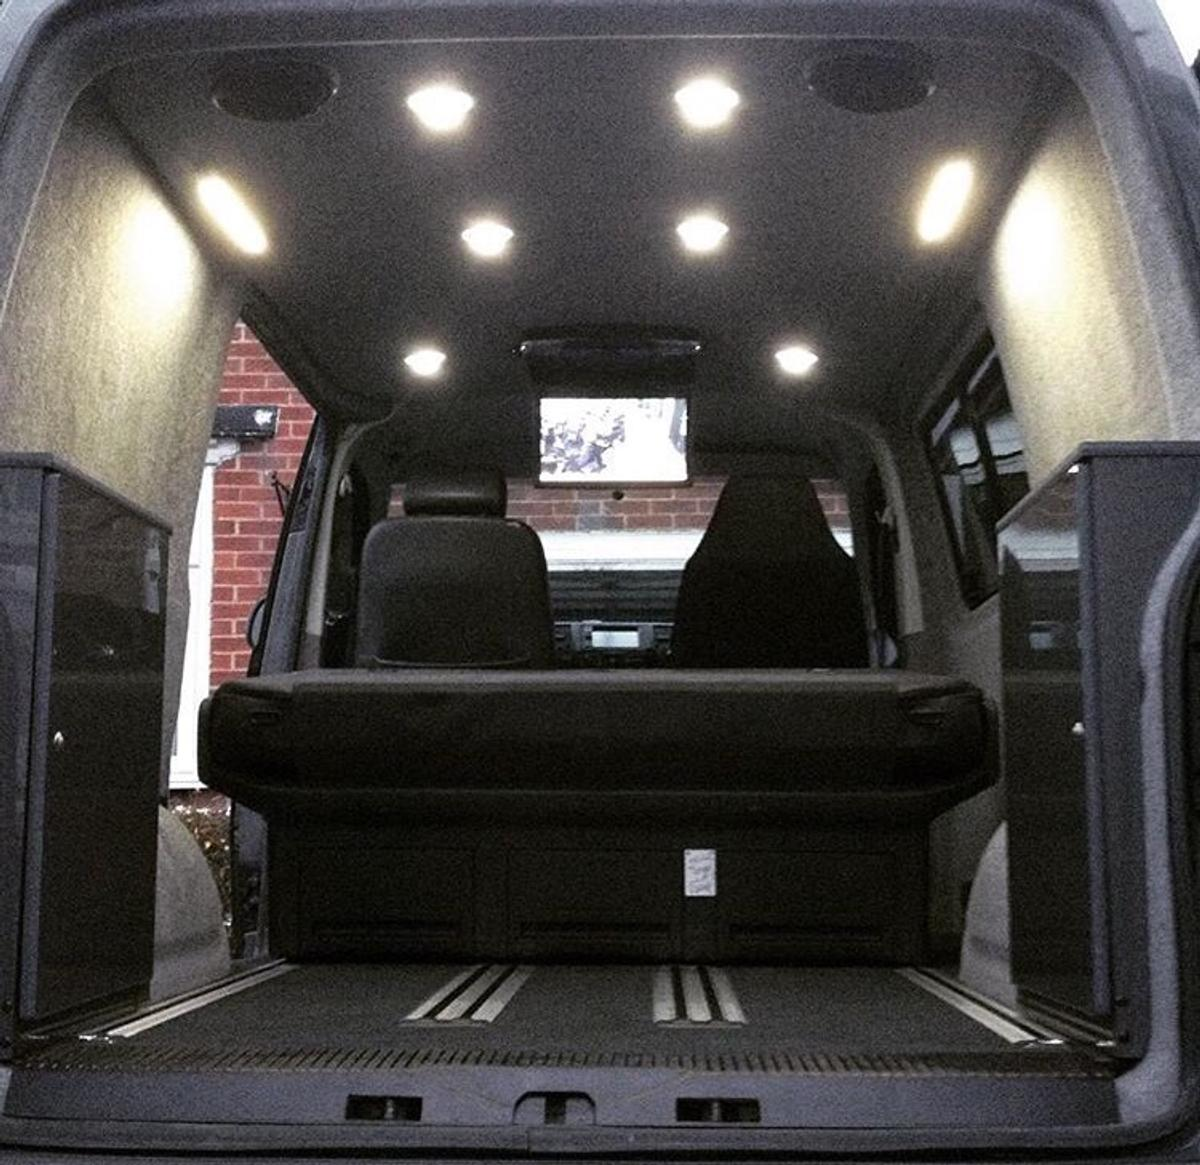 VW T5 caravelle rear leather seat bed